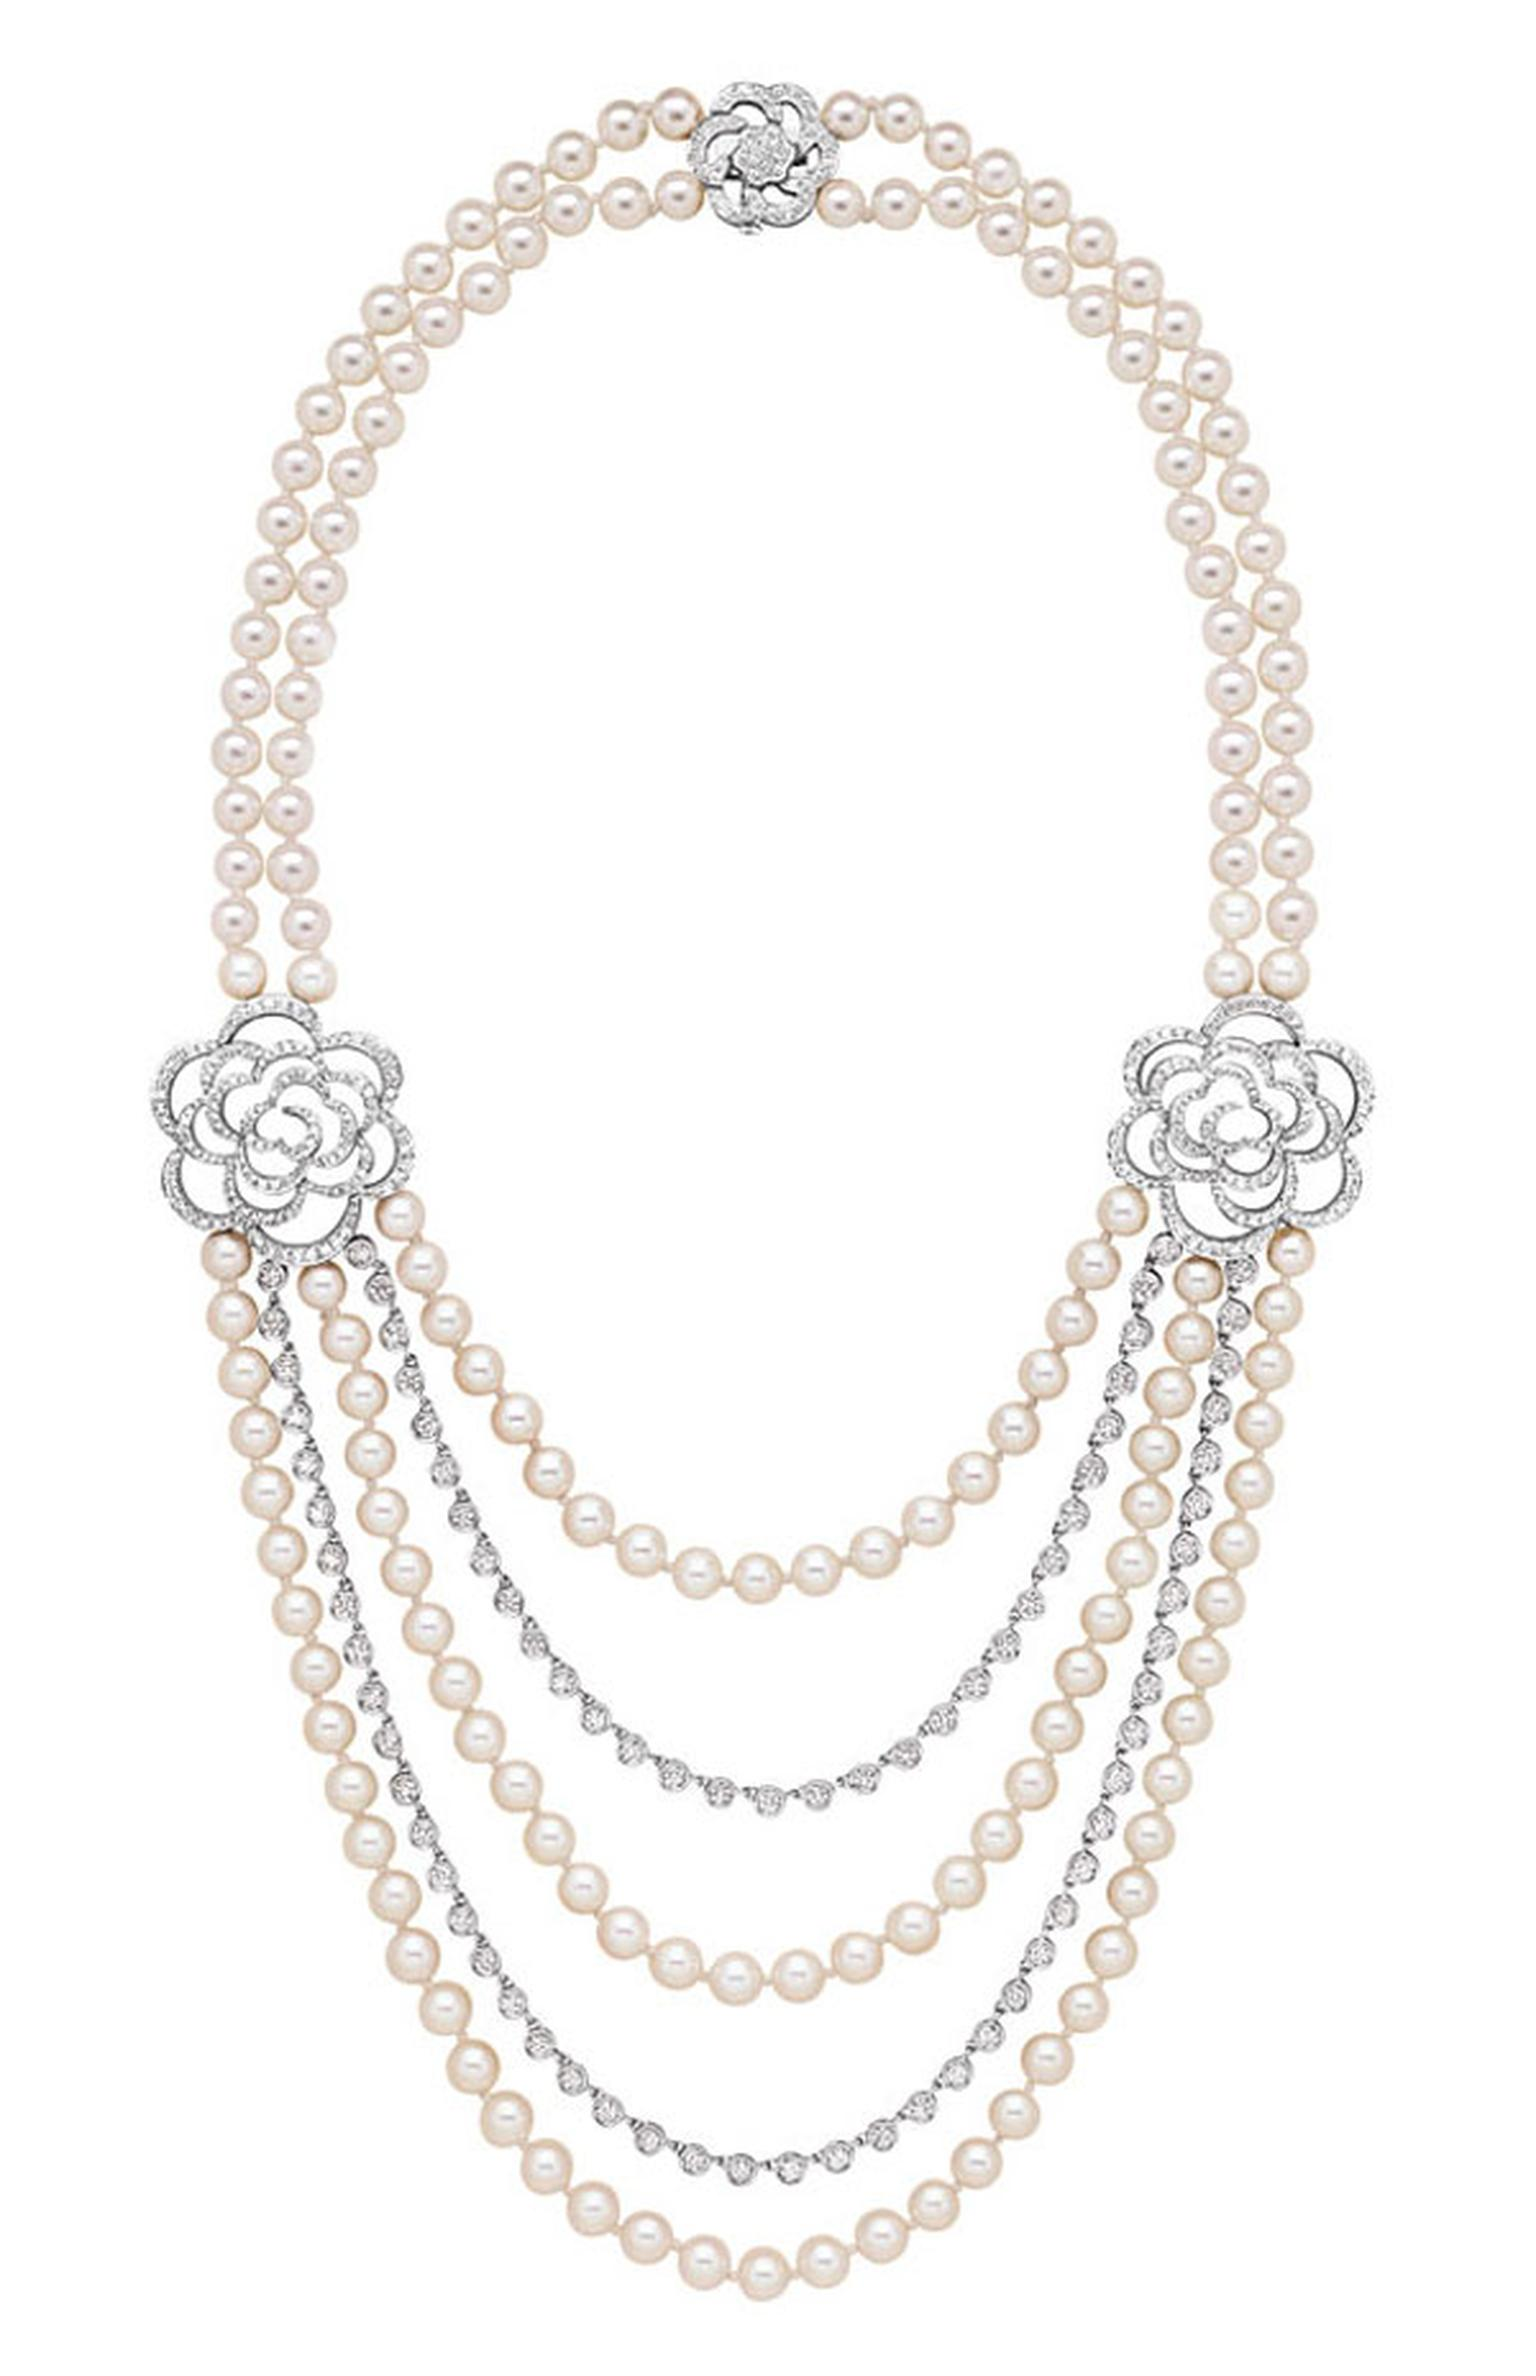 Chanel Came´lia Brode´ sautoir in white gold set with diamonds and Akoya pearls.